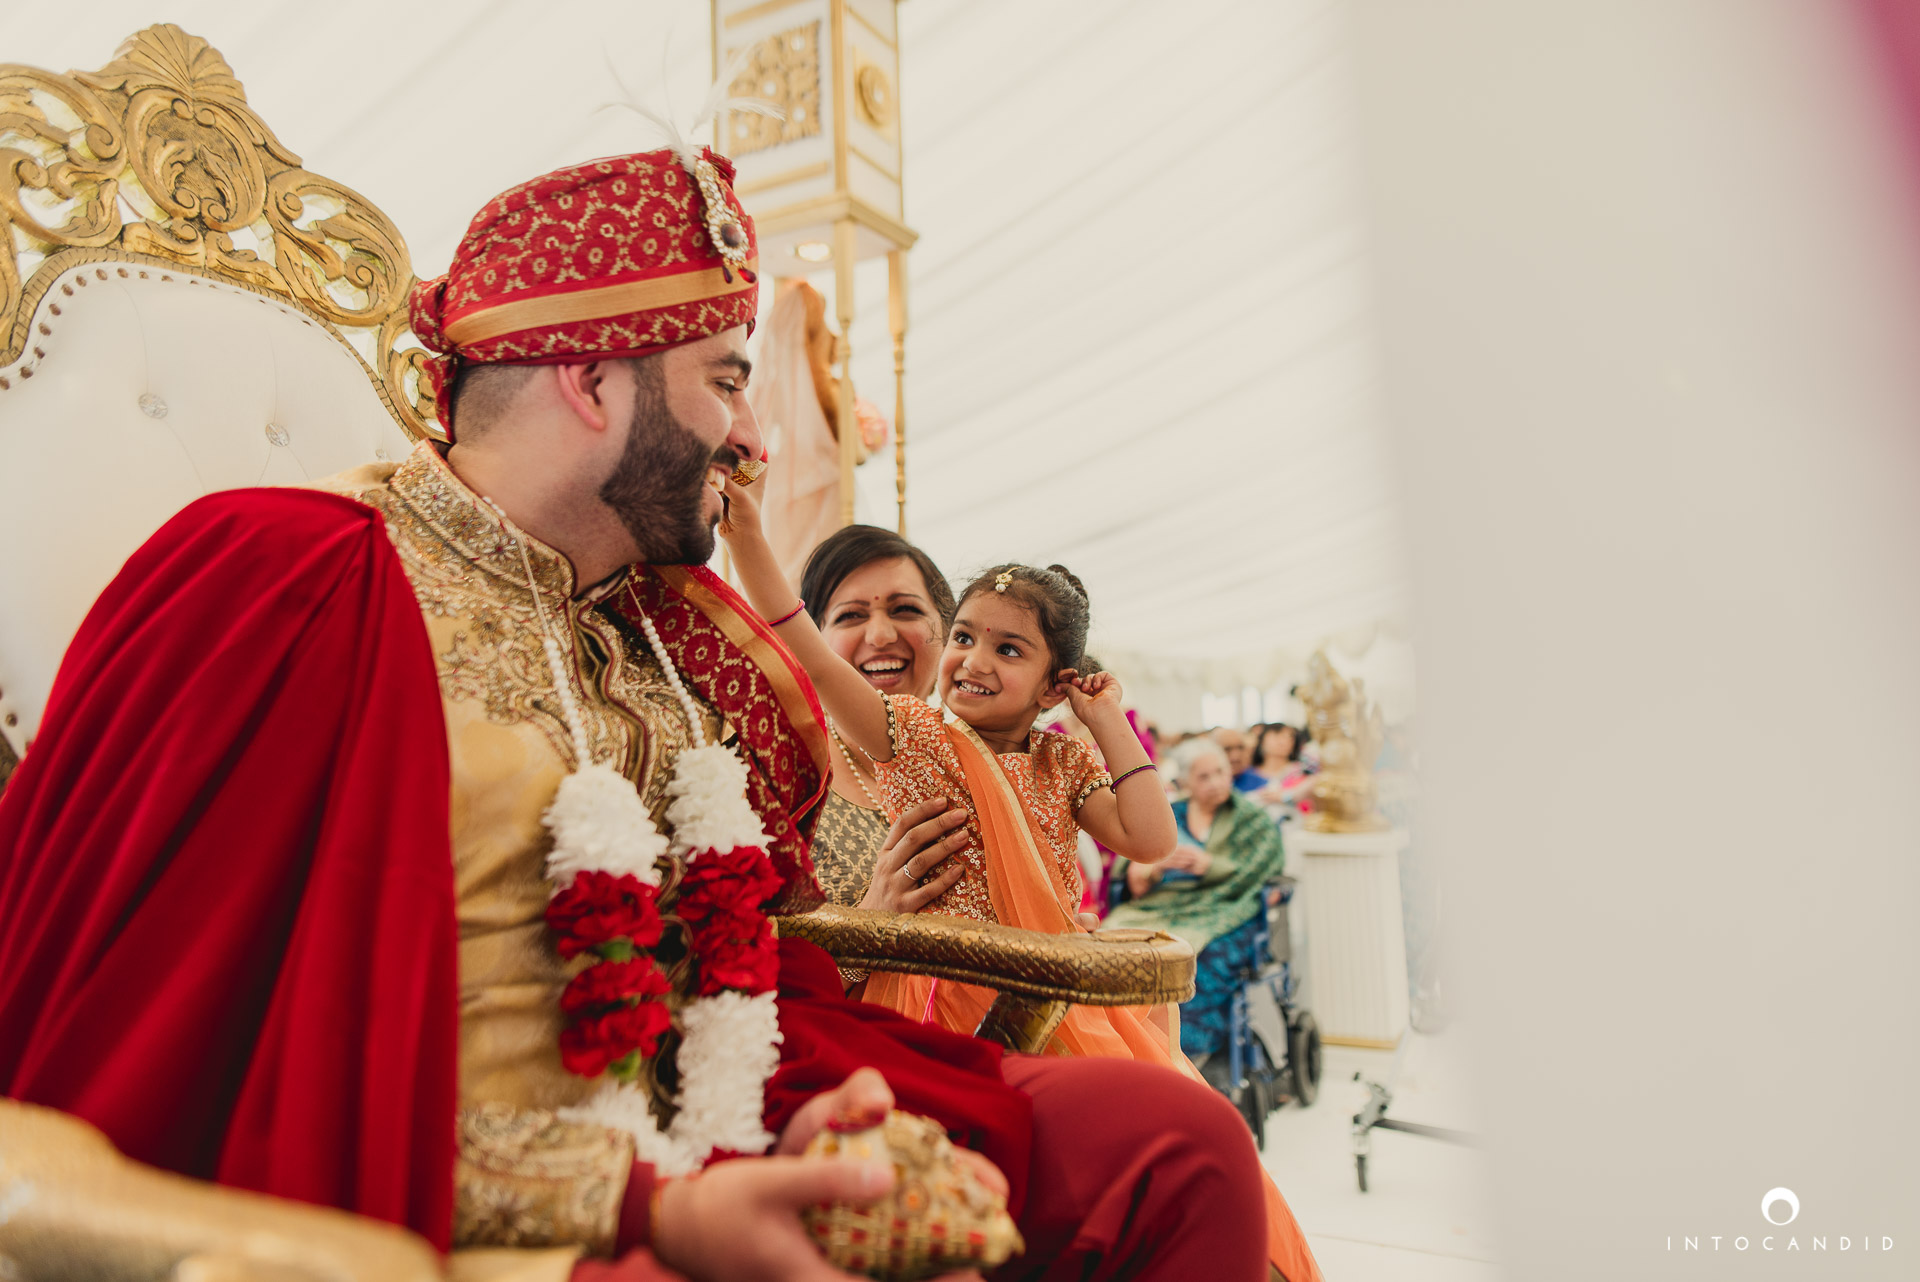 London_Wedding_Photographer_Intocandid_Photography_Ketan & Manasvi_37.JPG